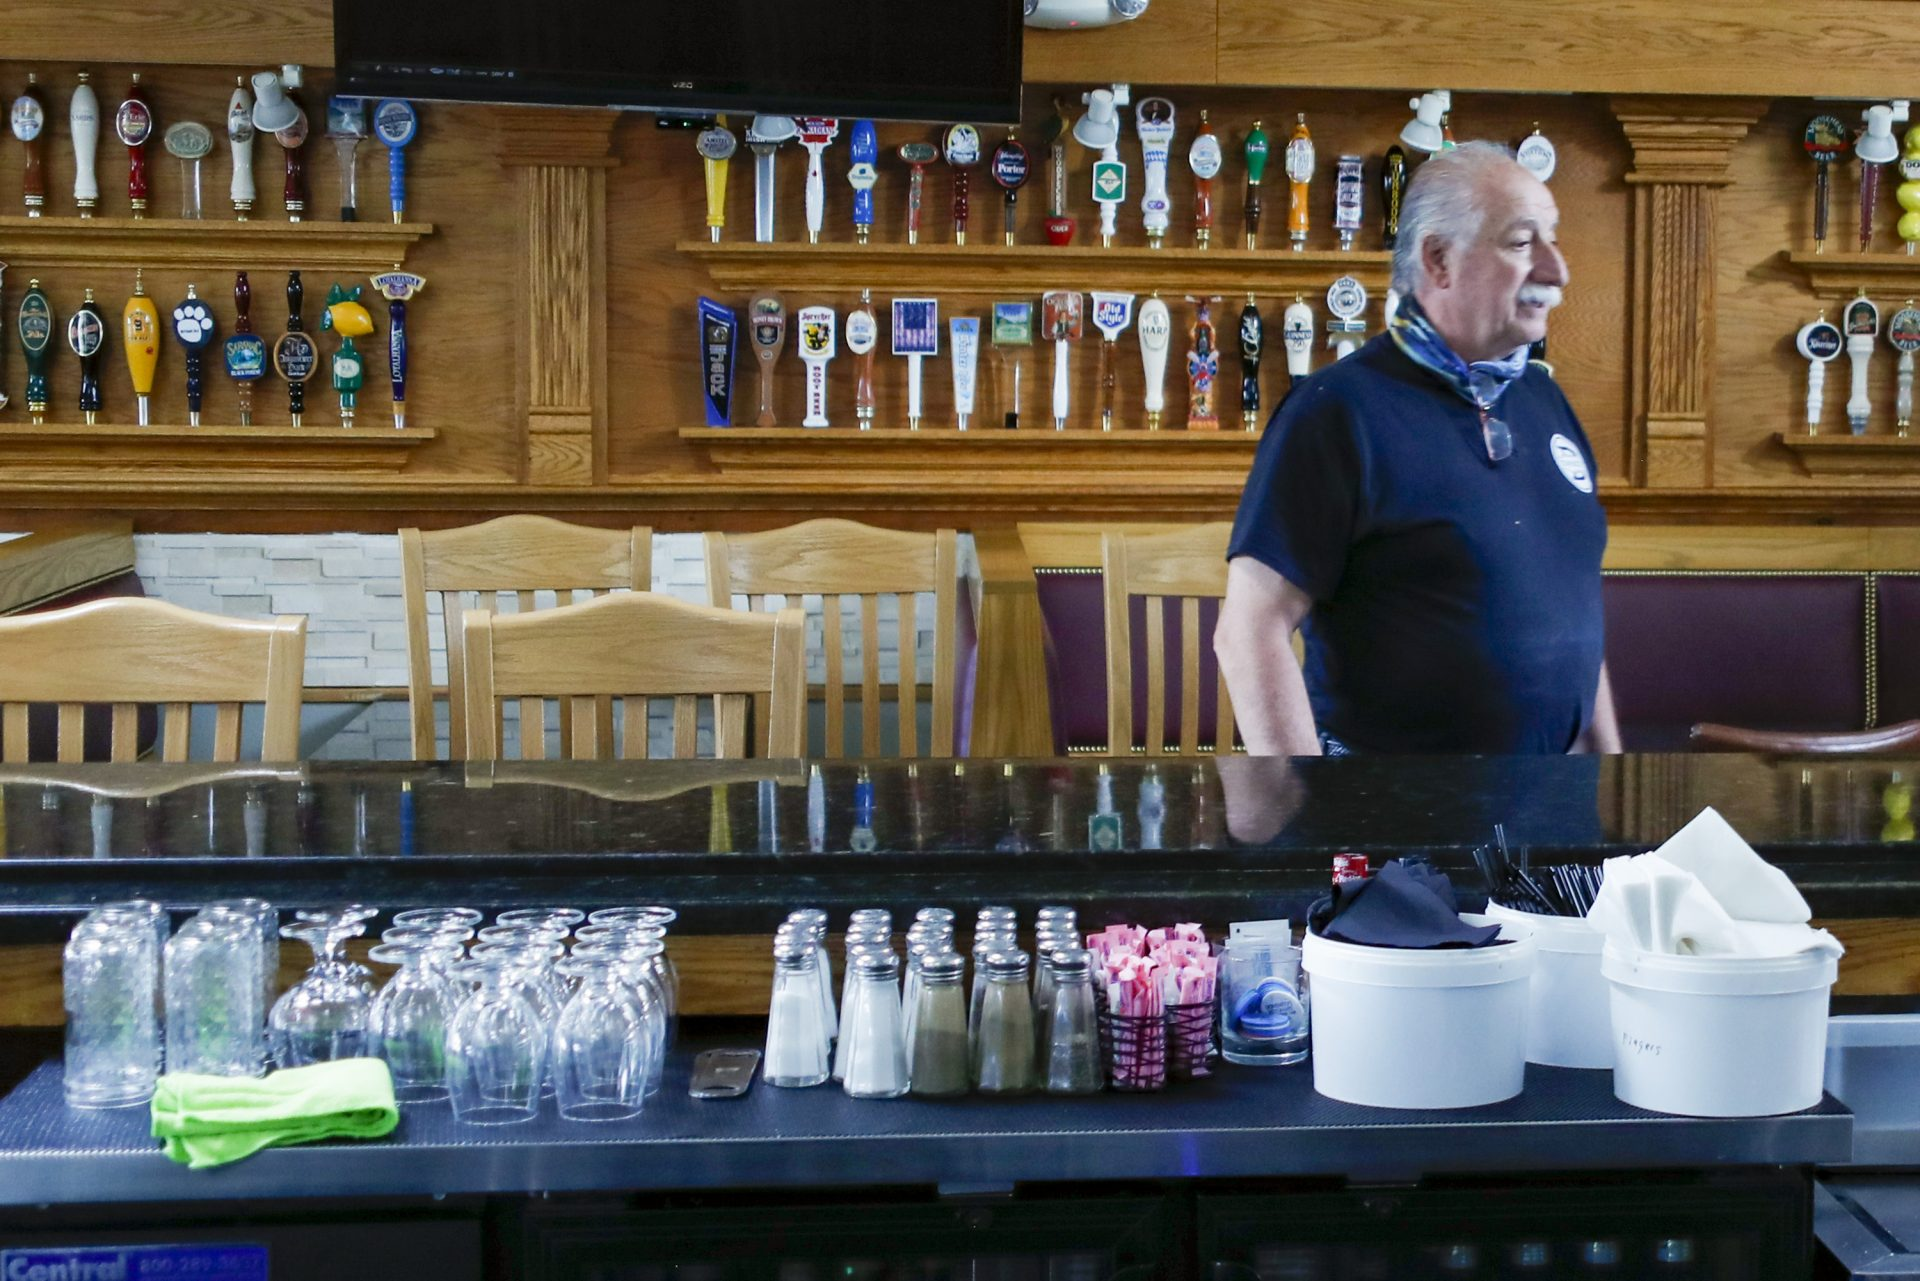 FILE PHOTO: Dominic Lombardo, owner of Domenicos restaurant, looks over the bar area, with the barstools separated, Thursday, June 4, 2020, in Cranberry Township, Pa., the day before patrons were again permitted to dine inside as COVID-19 restrictions loosened in the region.